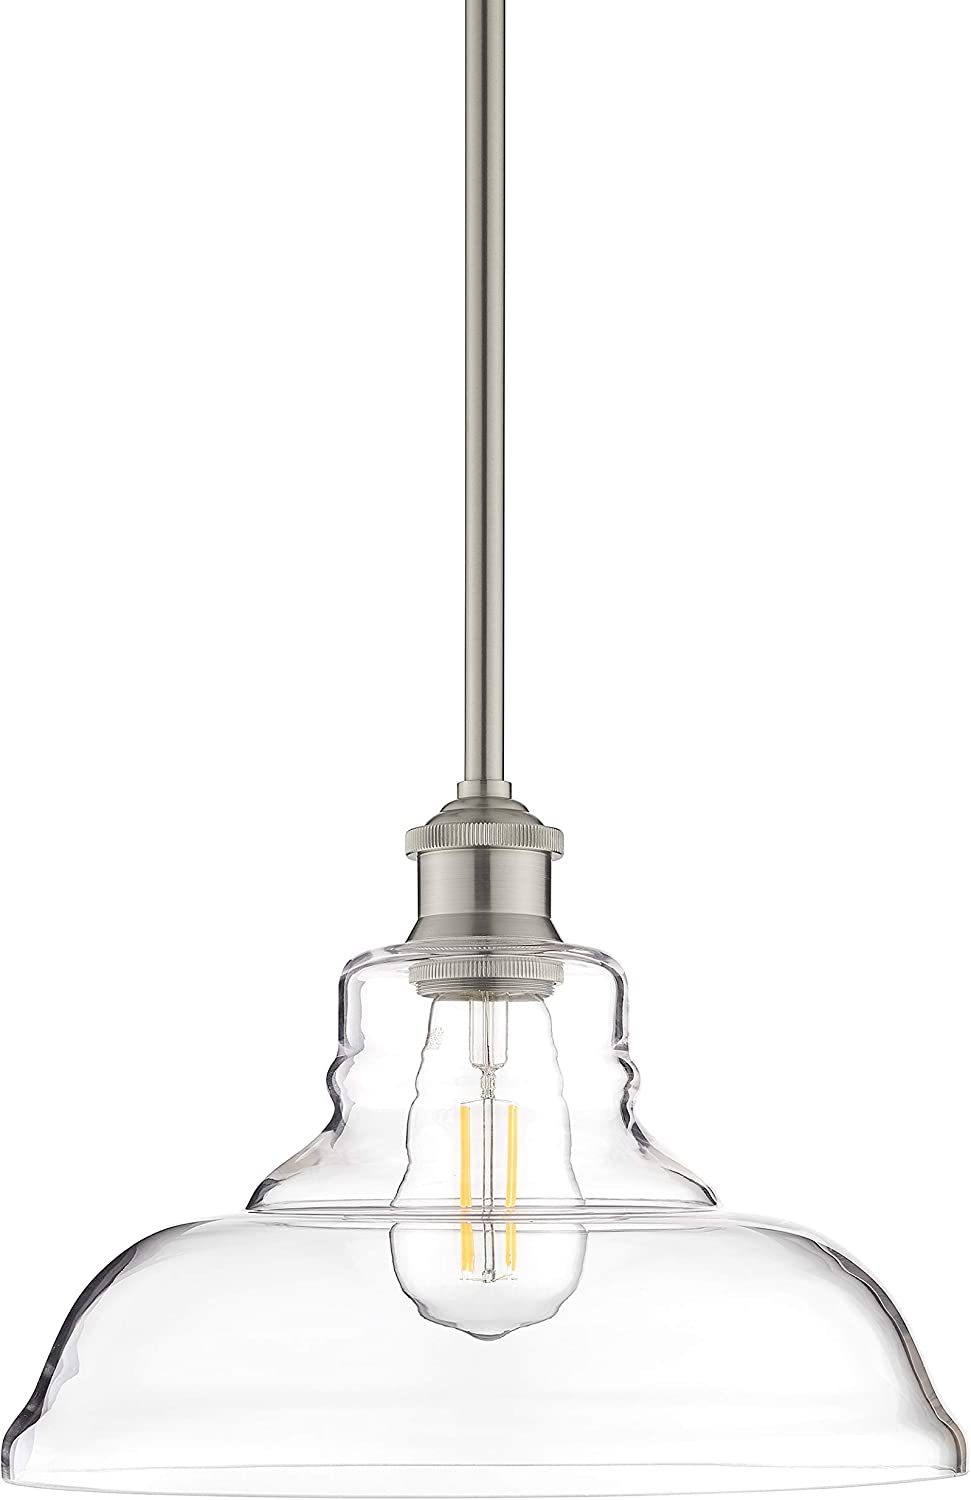 Lucera Glass Kitchen Pendant Light Brushed Nickel Farmhouse Hanging Light Fixture with LED Bulb LL-P431-LED-BN